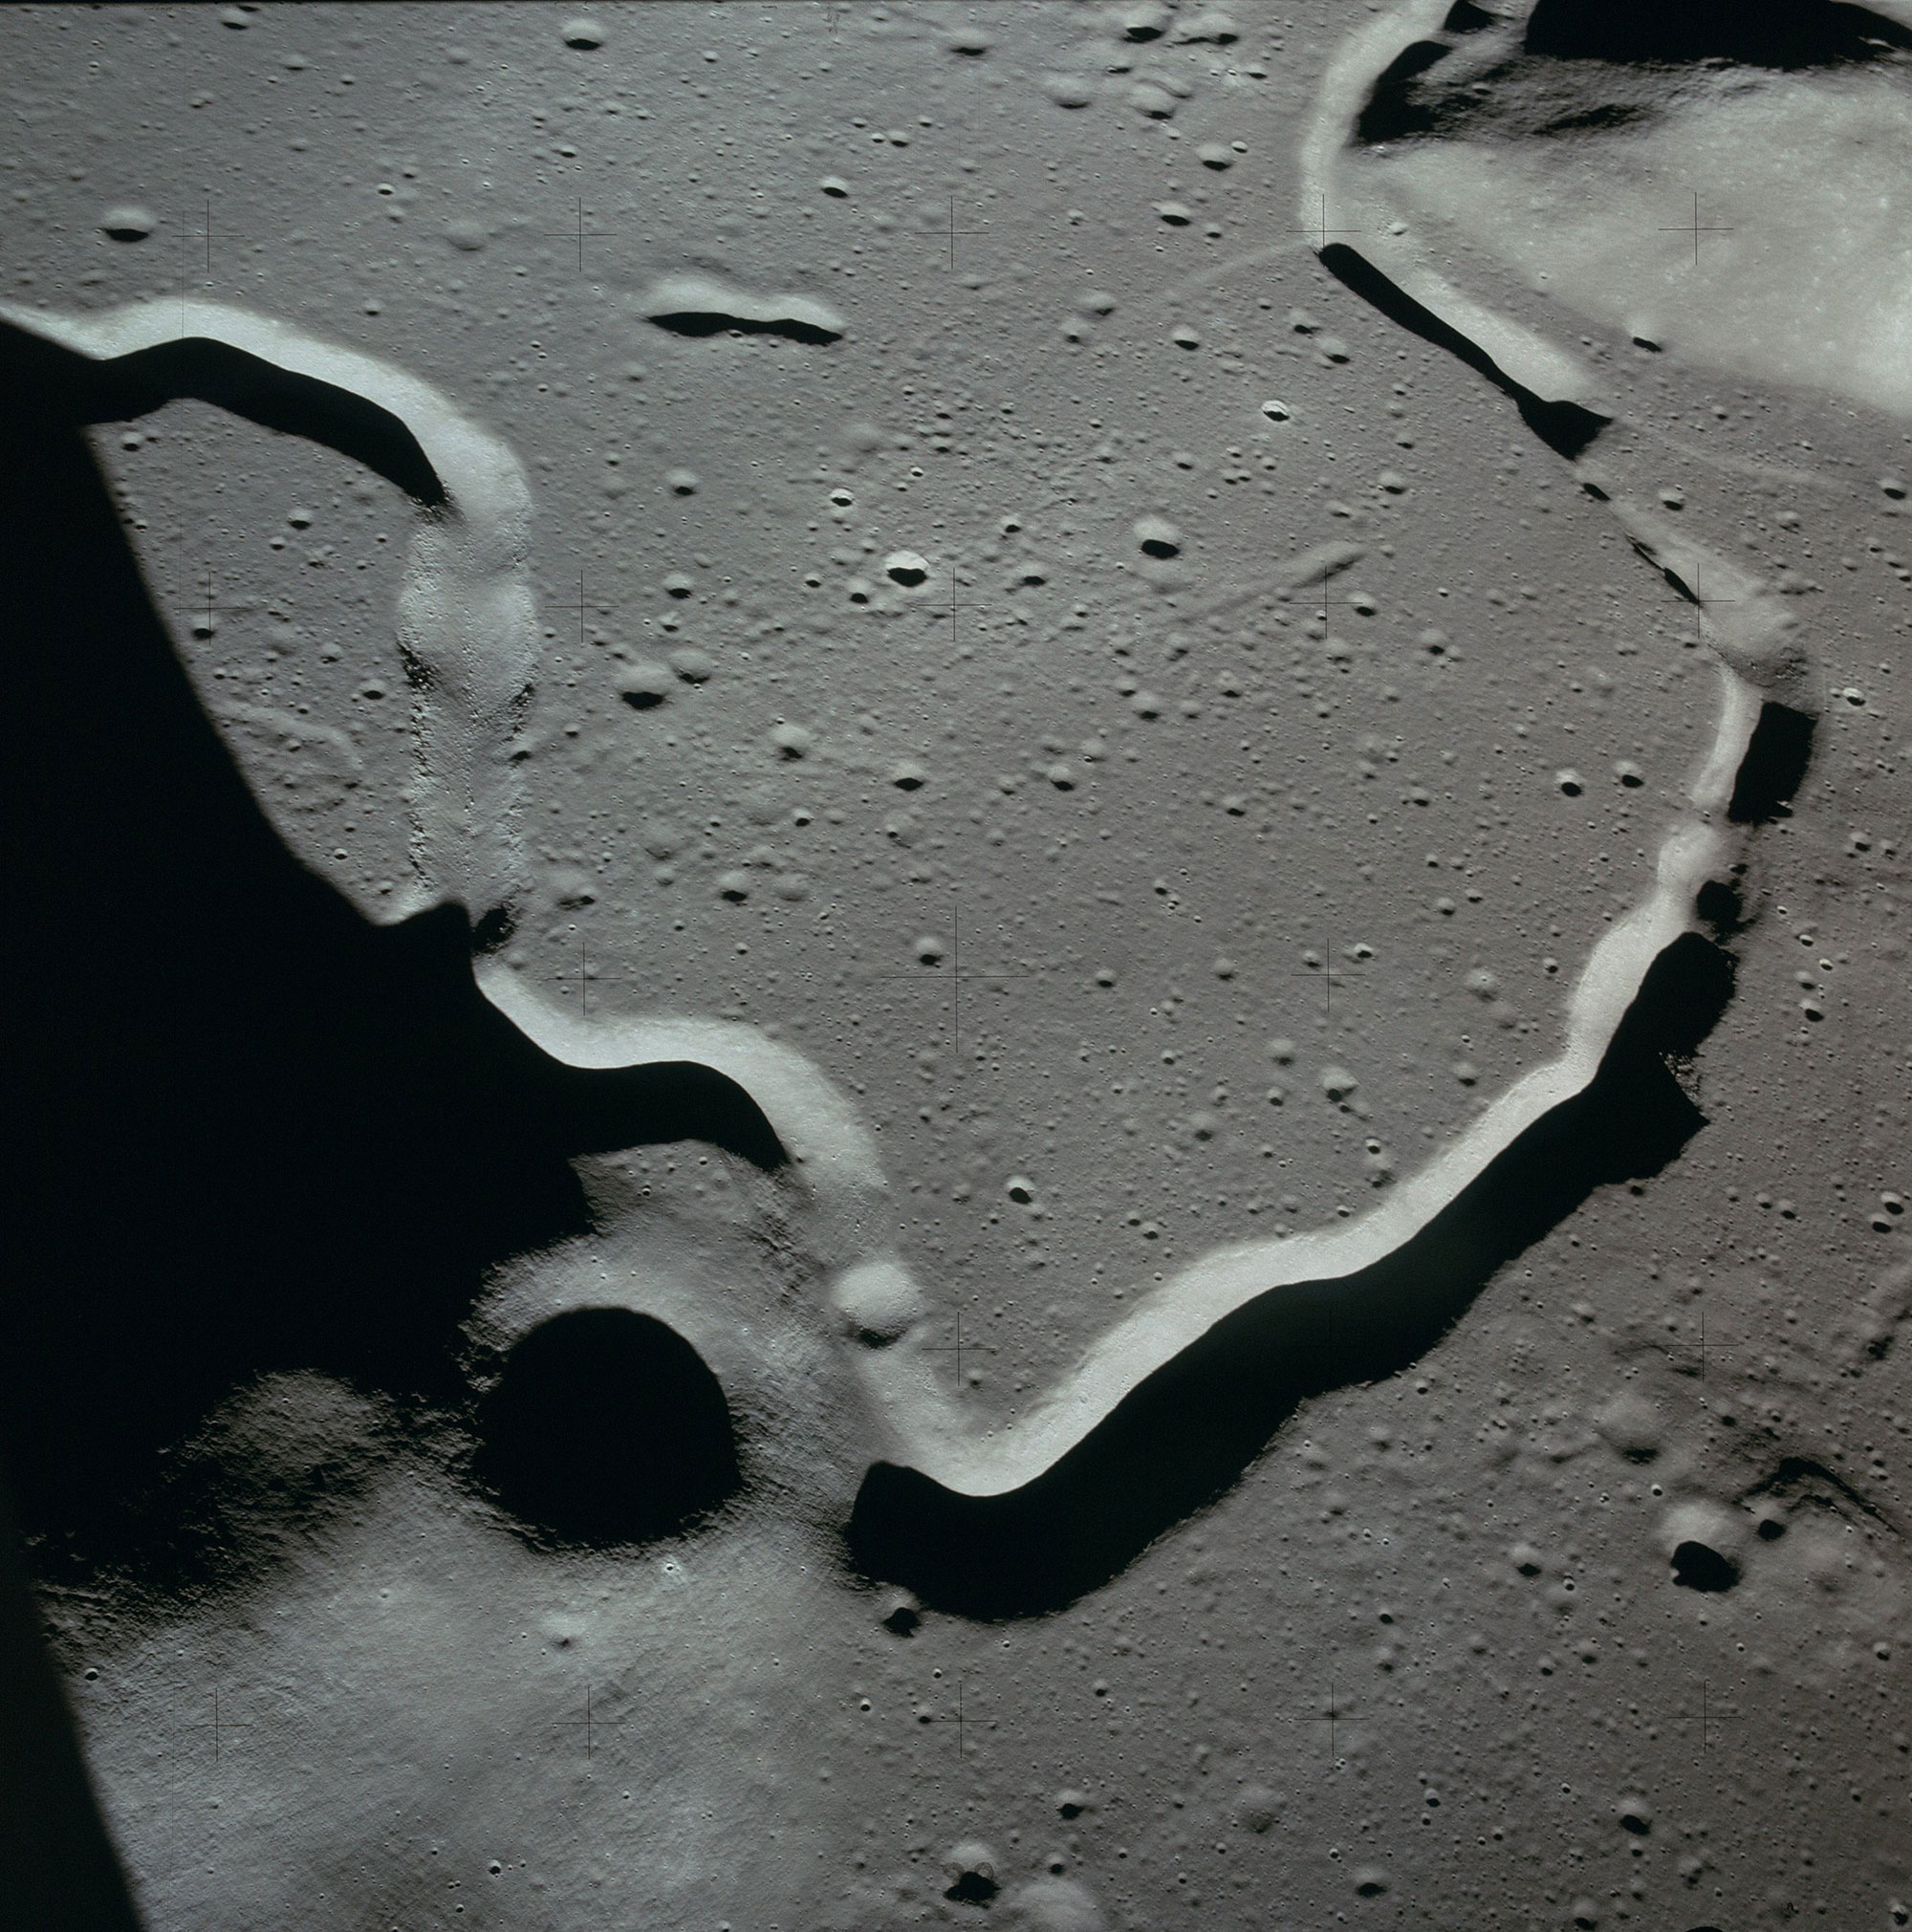 Hadley Rille as seen from orbit during the Apollo 15 mission. Credit: NASA via Retro Space Images